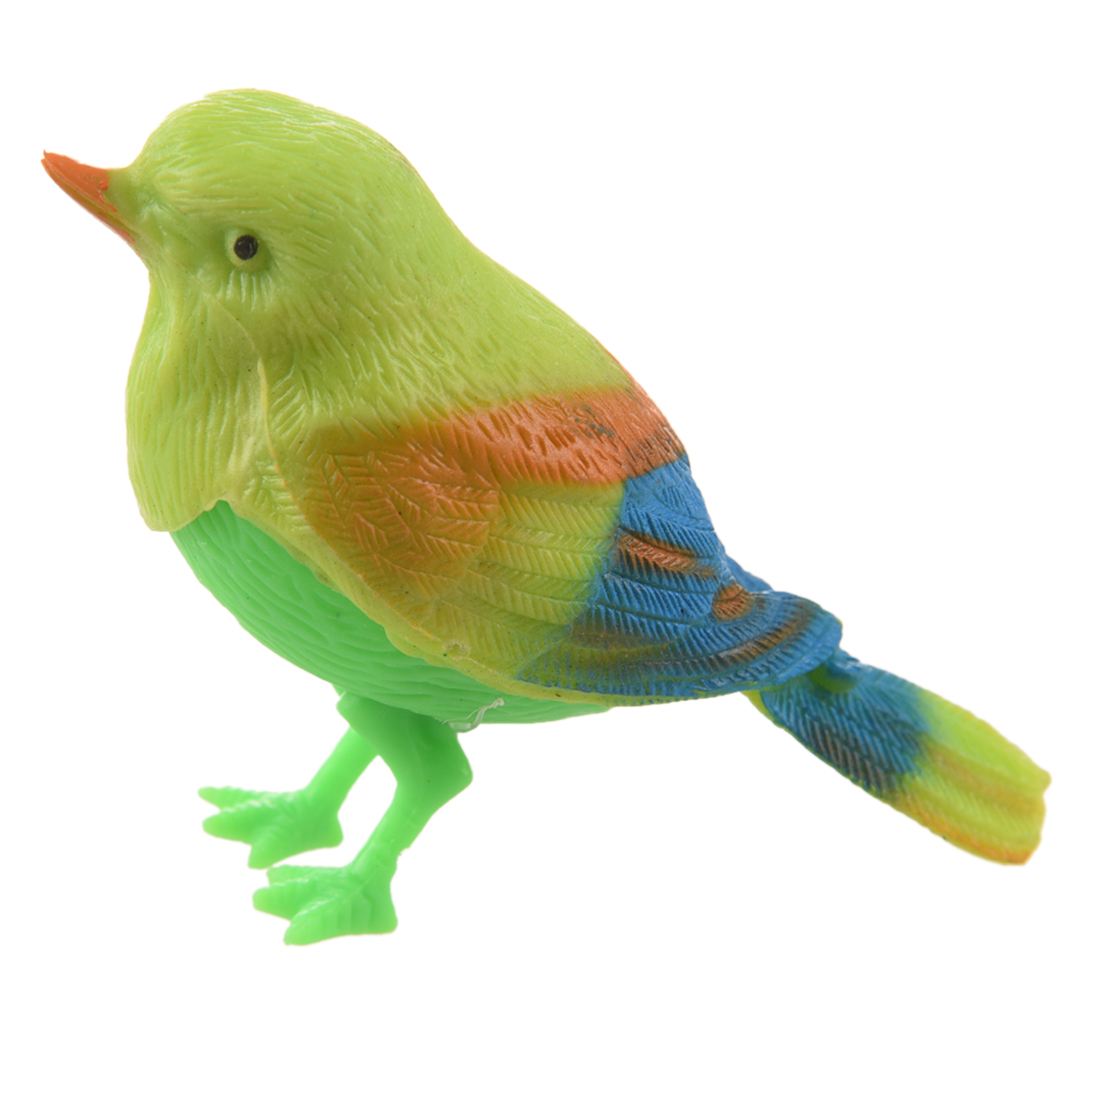 New Practical Superior Green Sound Control Beautiful Singing Bird Funny Toy